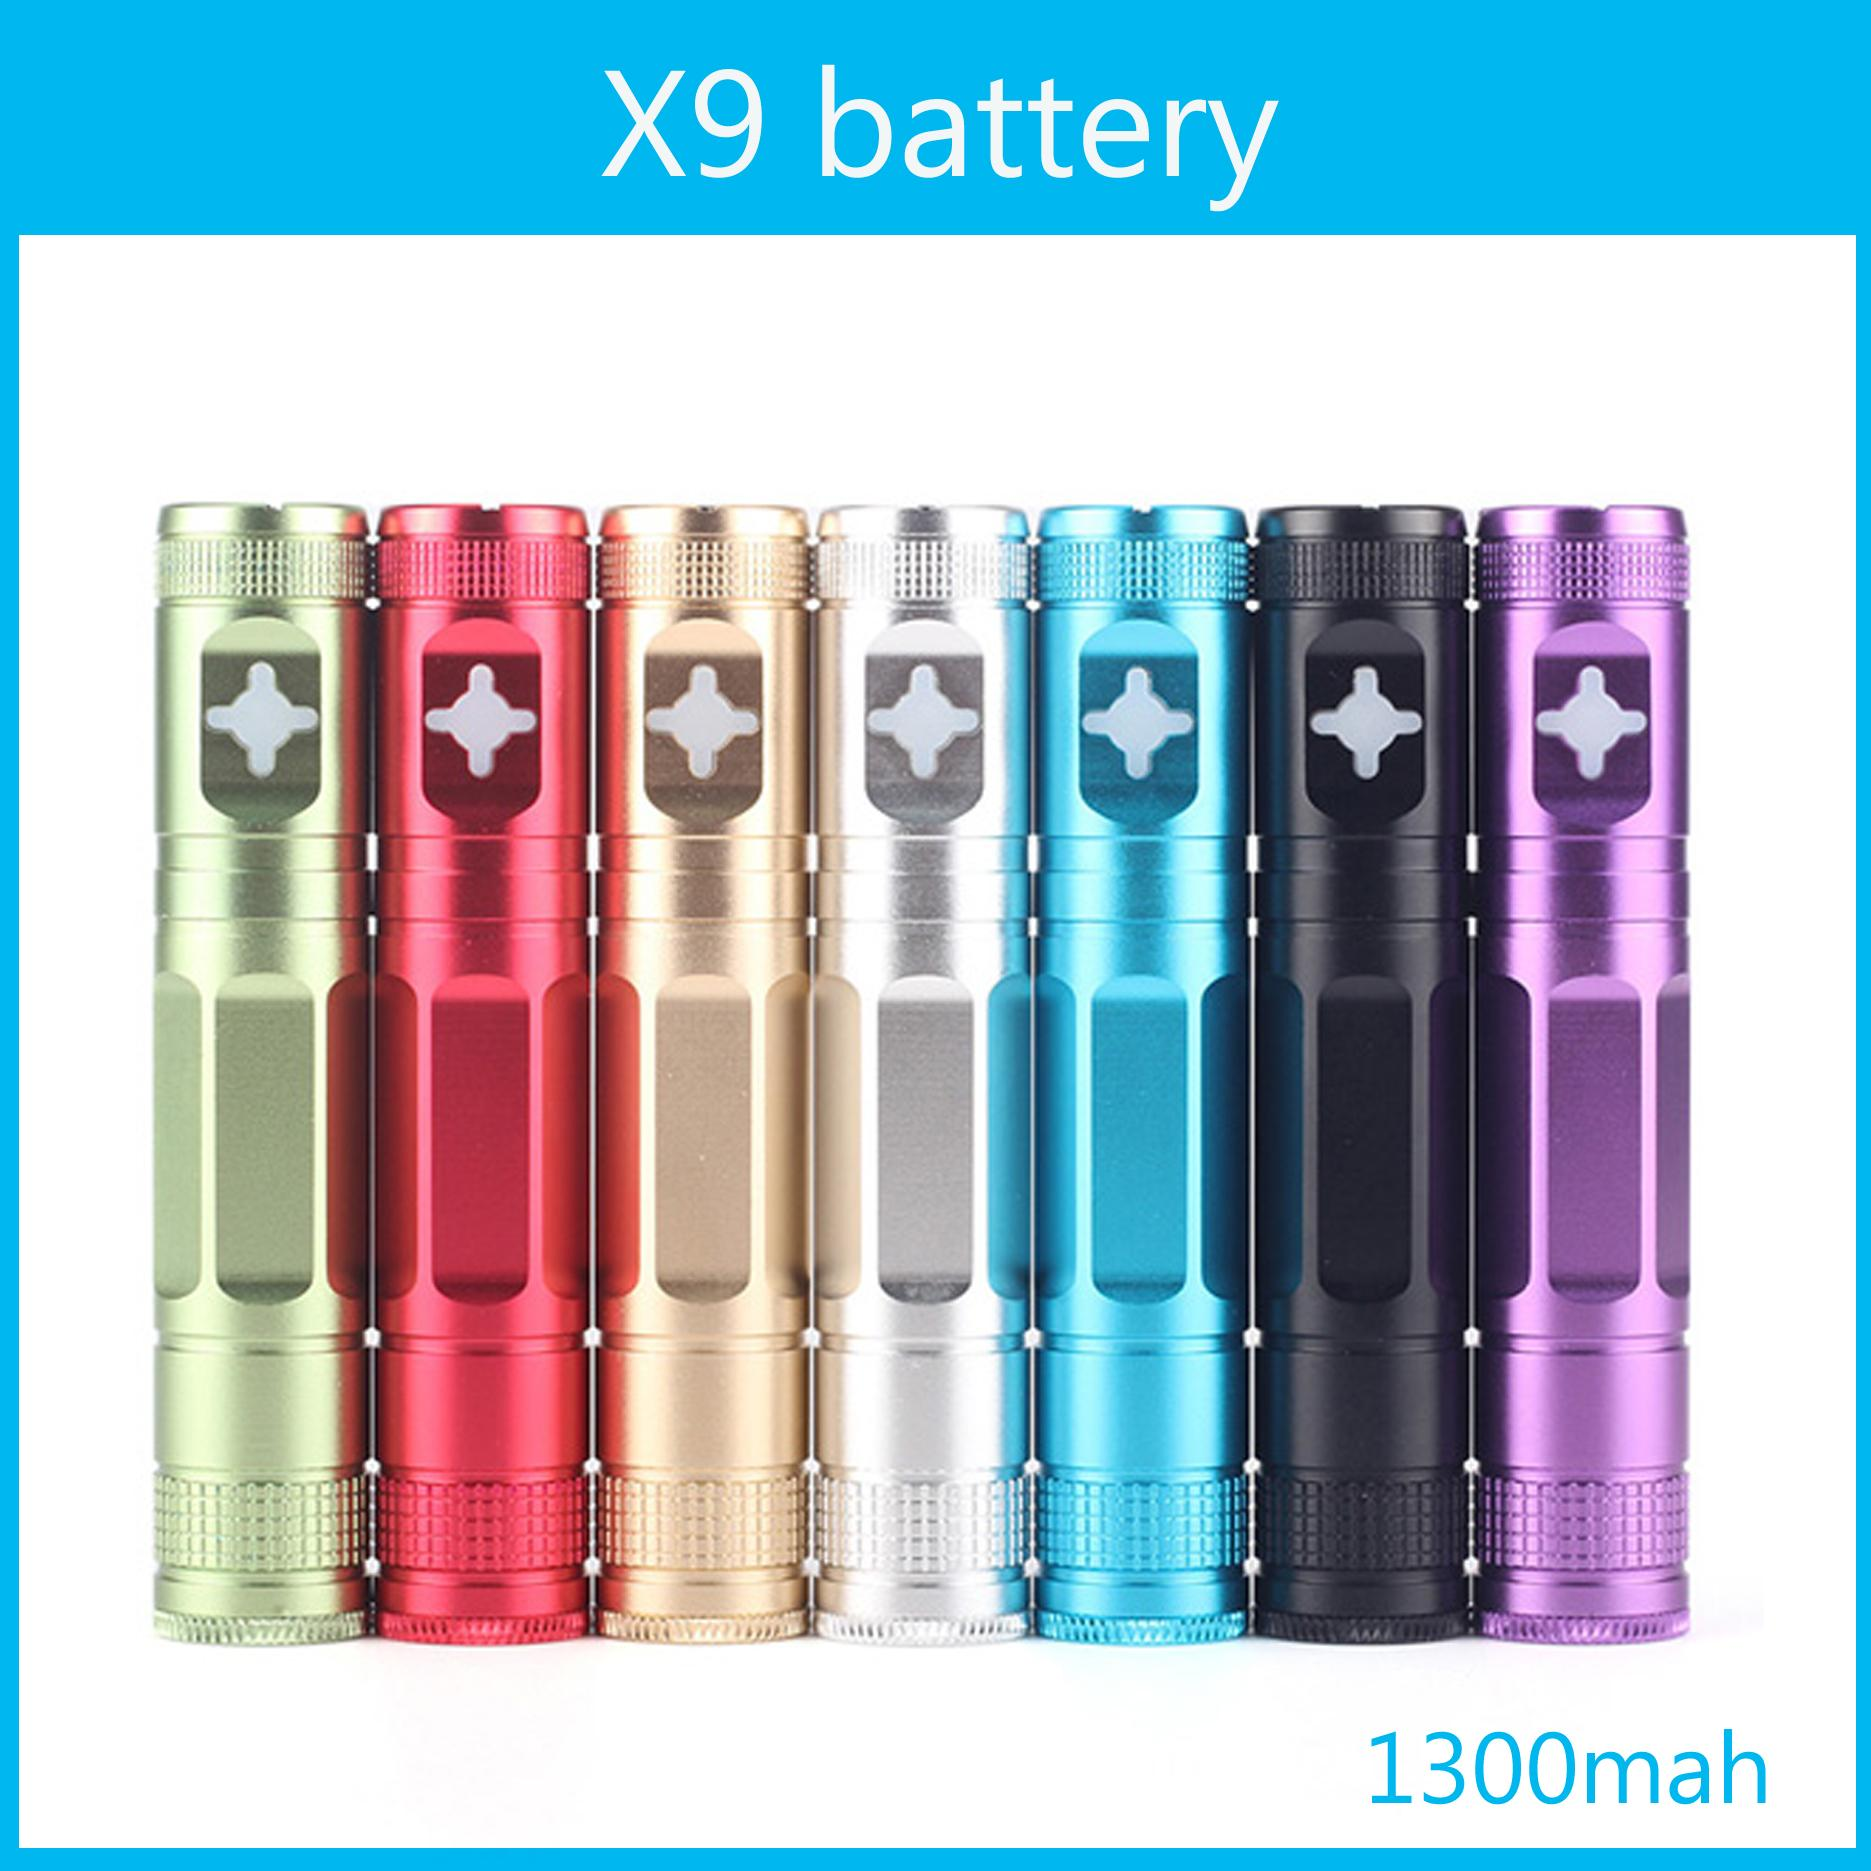 Colorful 1300mah X9 batterie eGo E-Cigarette tension variable 3.2V-4.2V X6 amélioré Batterie Fit 510 fil atomiseur